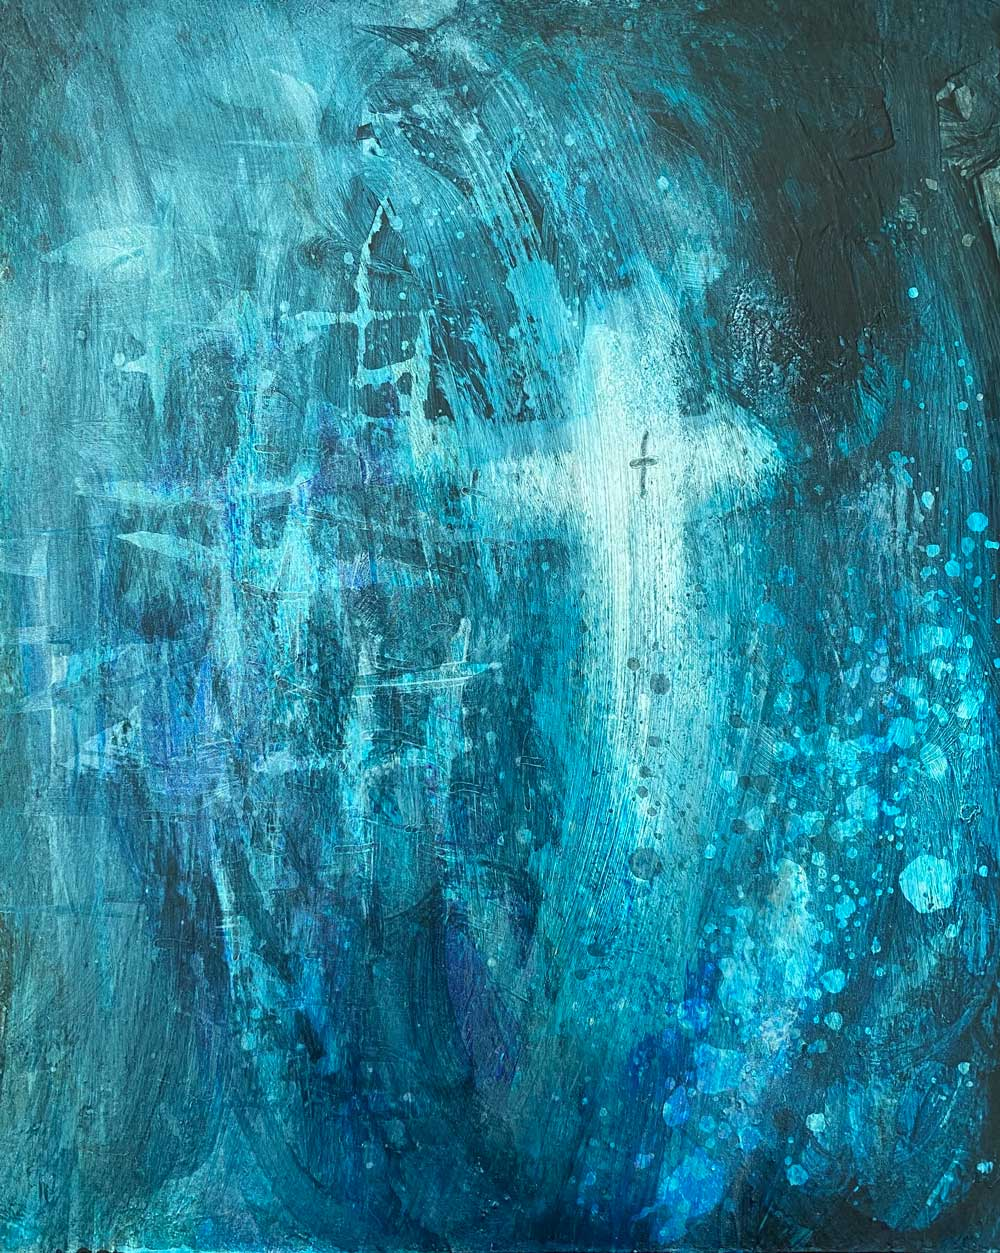 Abstract painting from the Fifth Sunday of Lent, 2020 by Michelle L Hofer